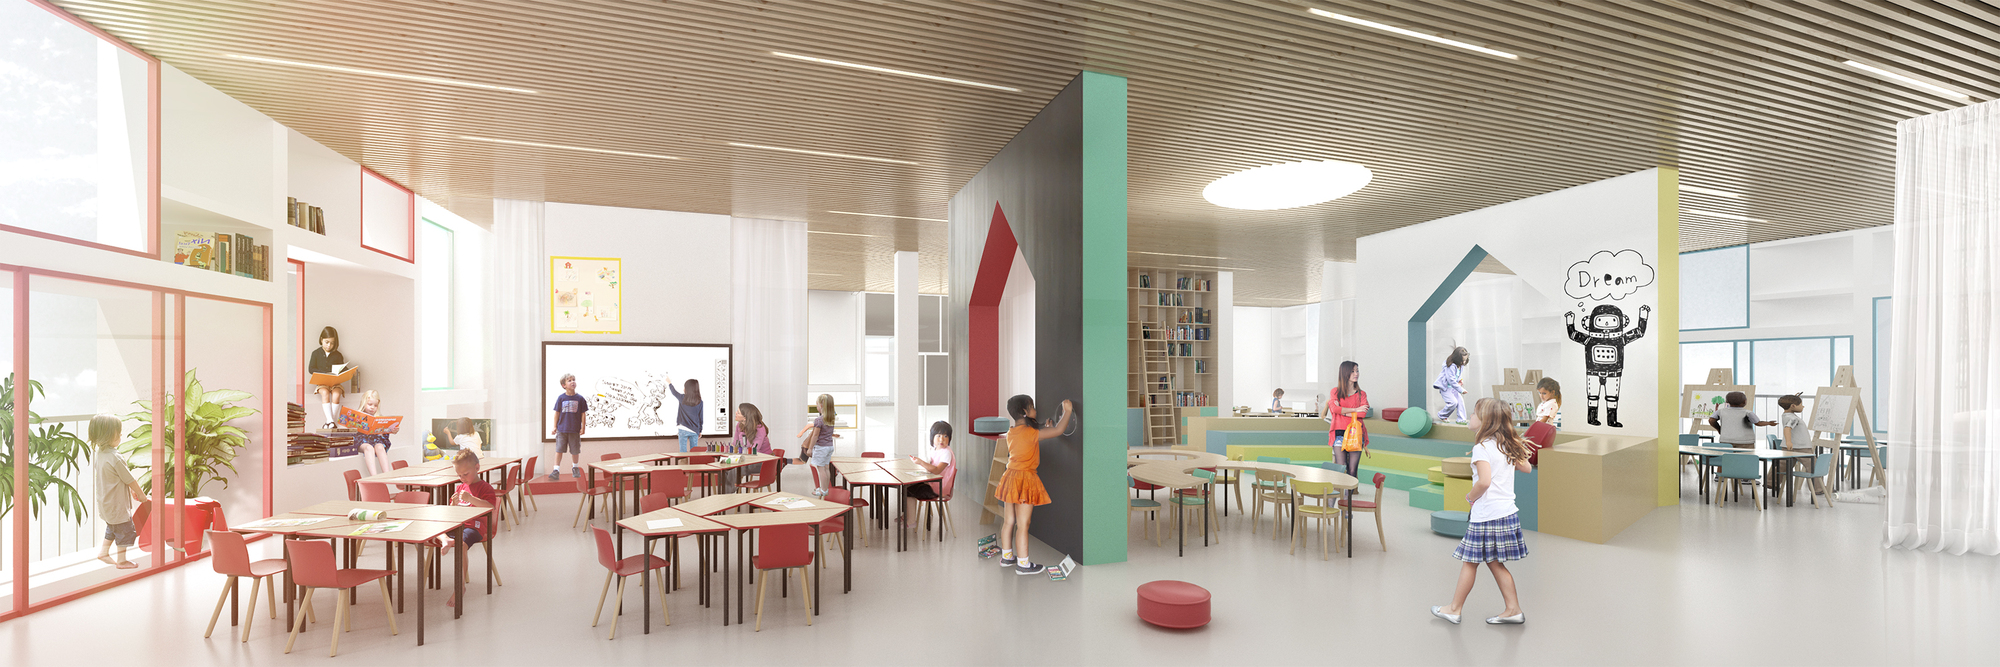 Architecture Design For Virtual Classroom : Gallery of henning larsen architects designs french